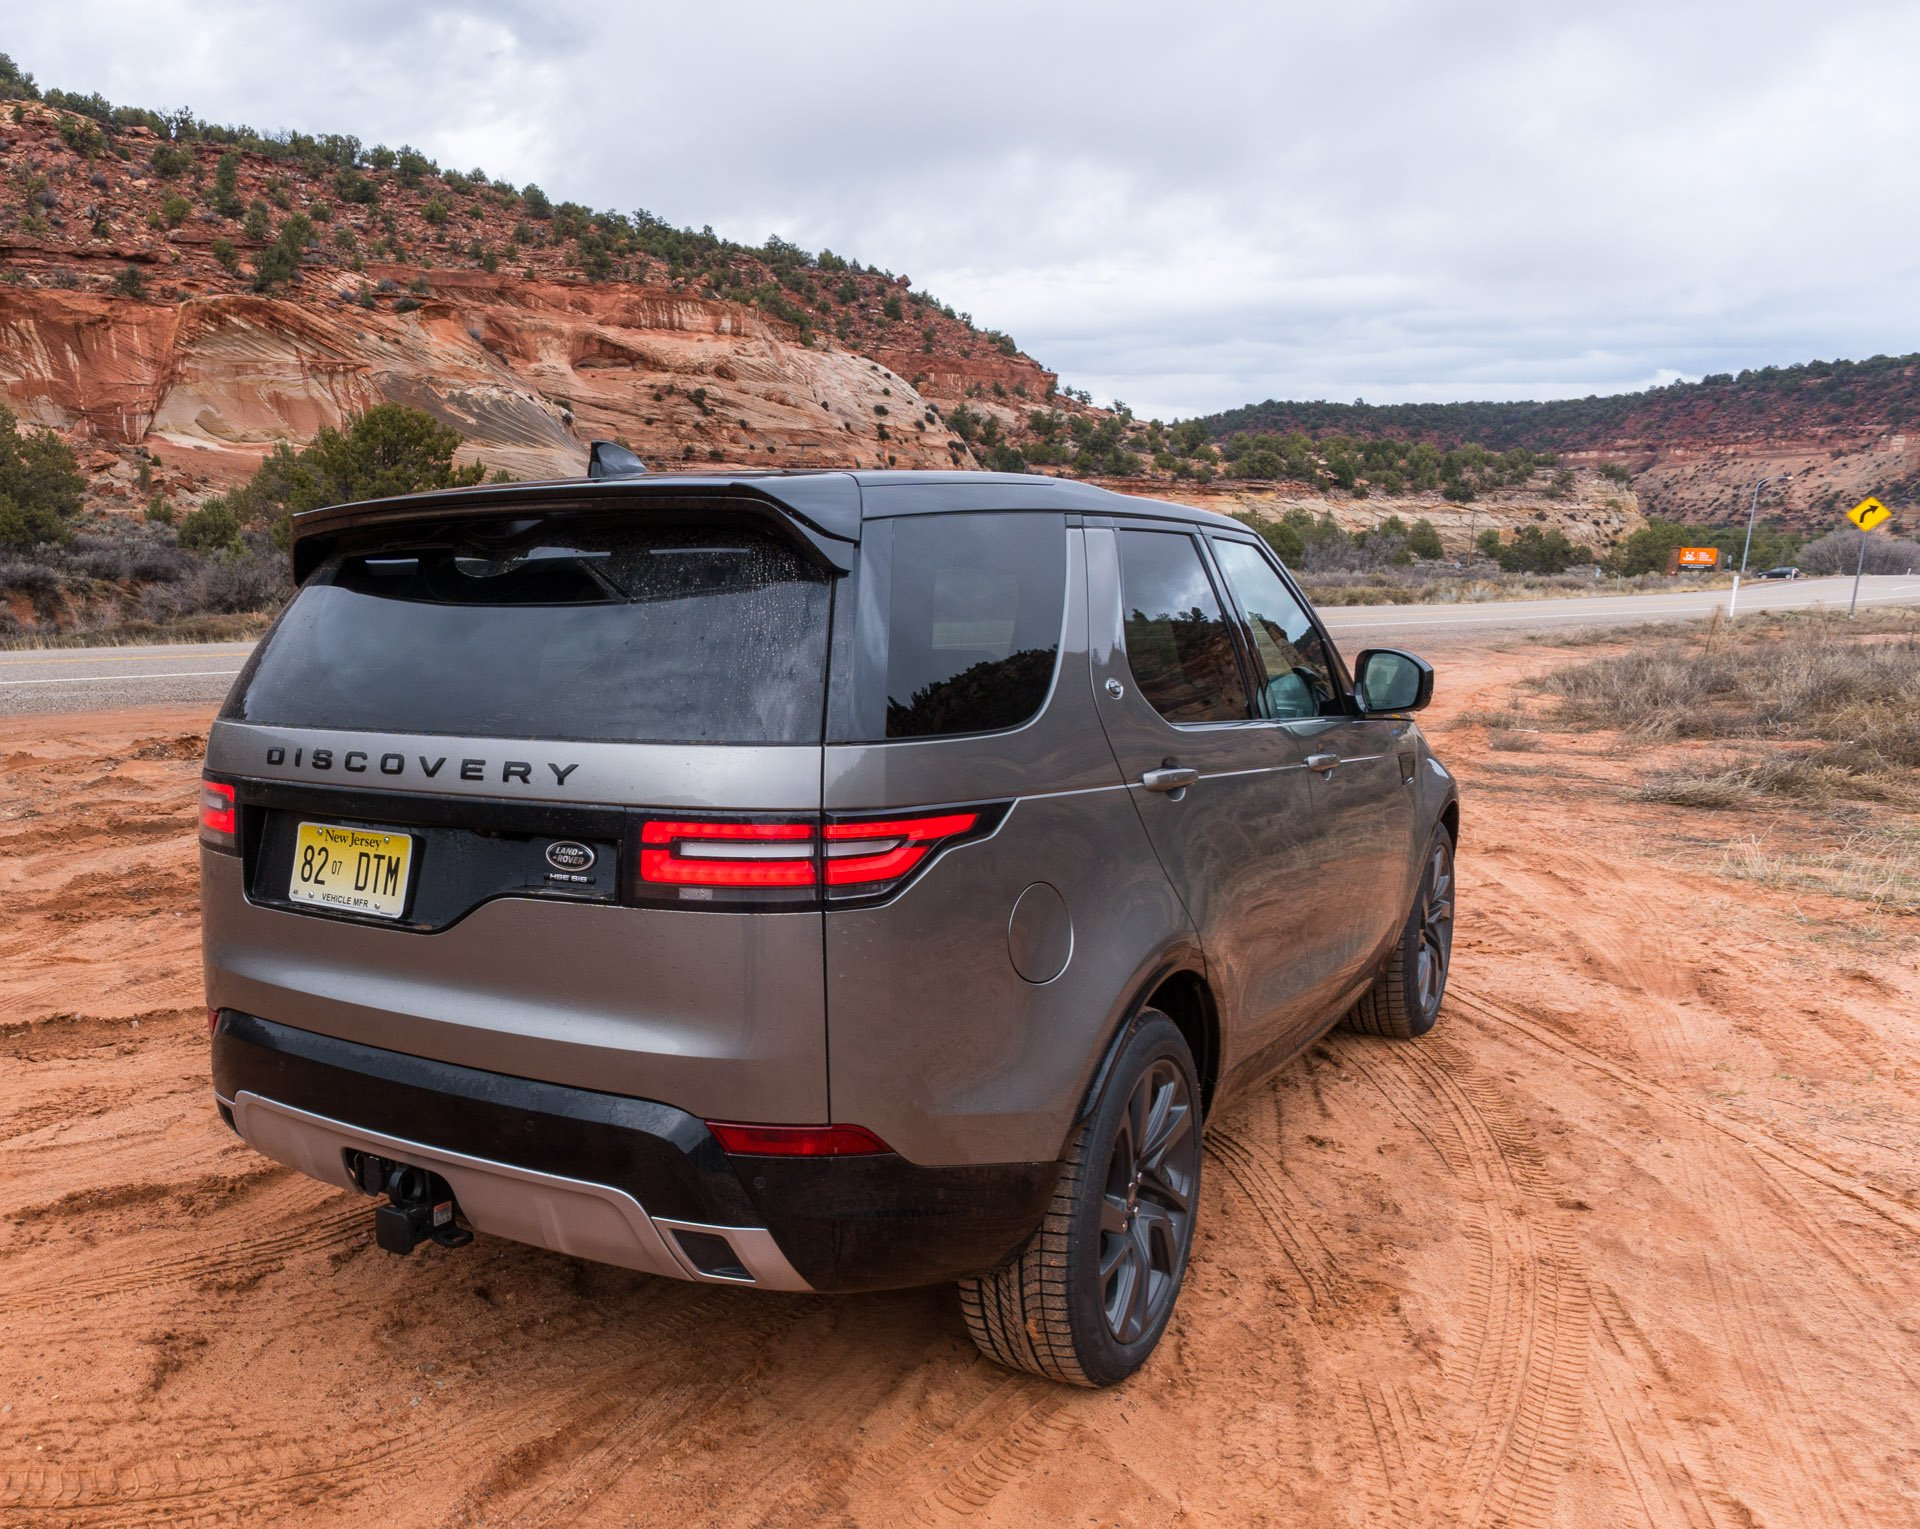 2017 Land Rover Discovery: The New King of the SUV Hill ...